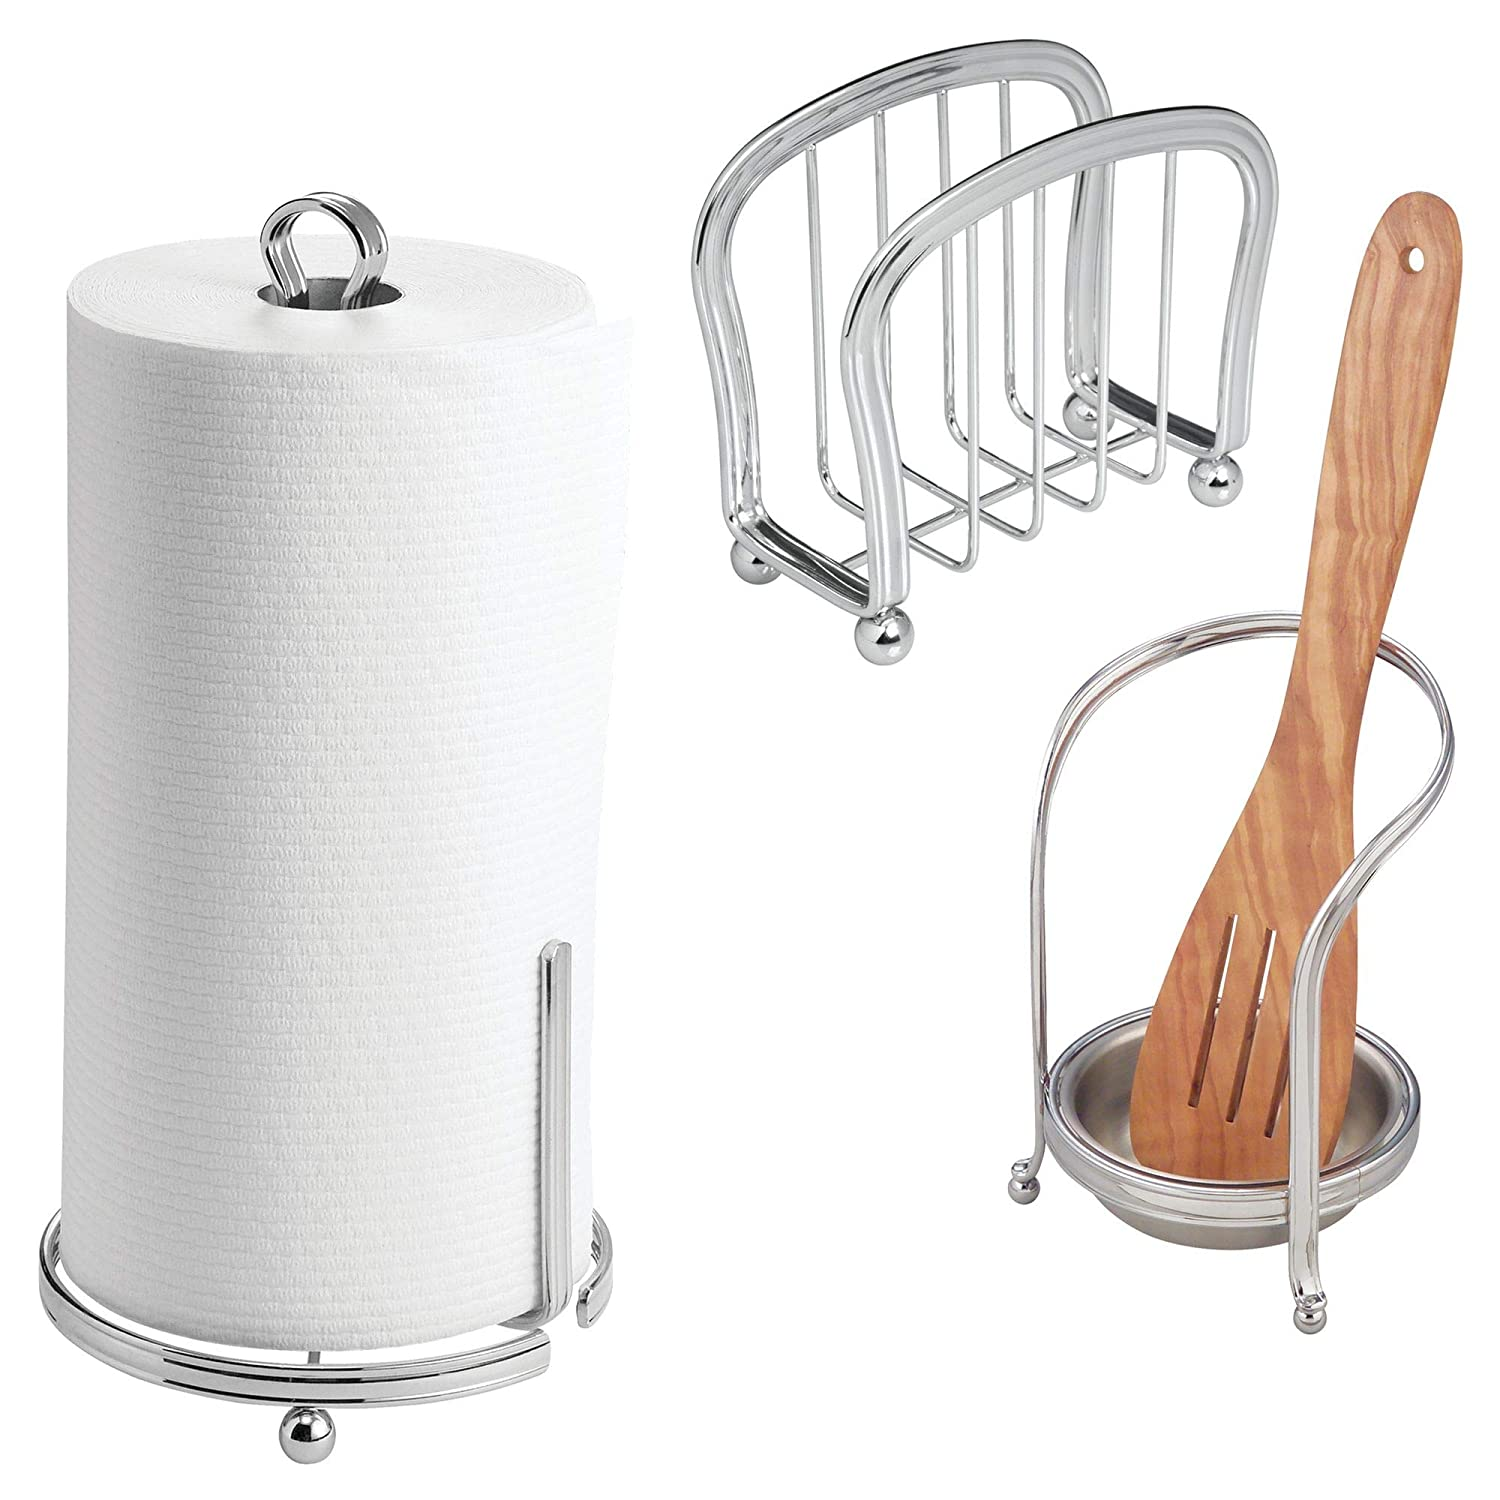 mDesign Kitchen Counter Accessory Set, Spoon Rest, Paper Towel Stand, Napkin Holder - Set of 3, Chrome